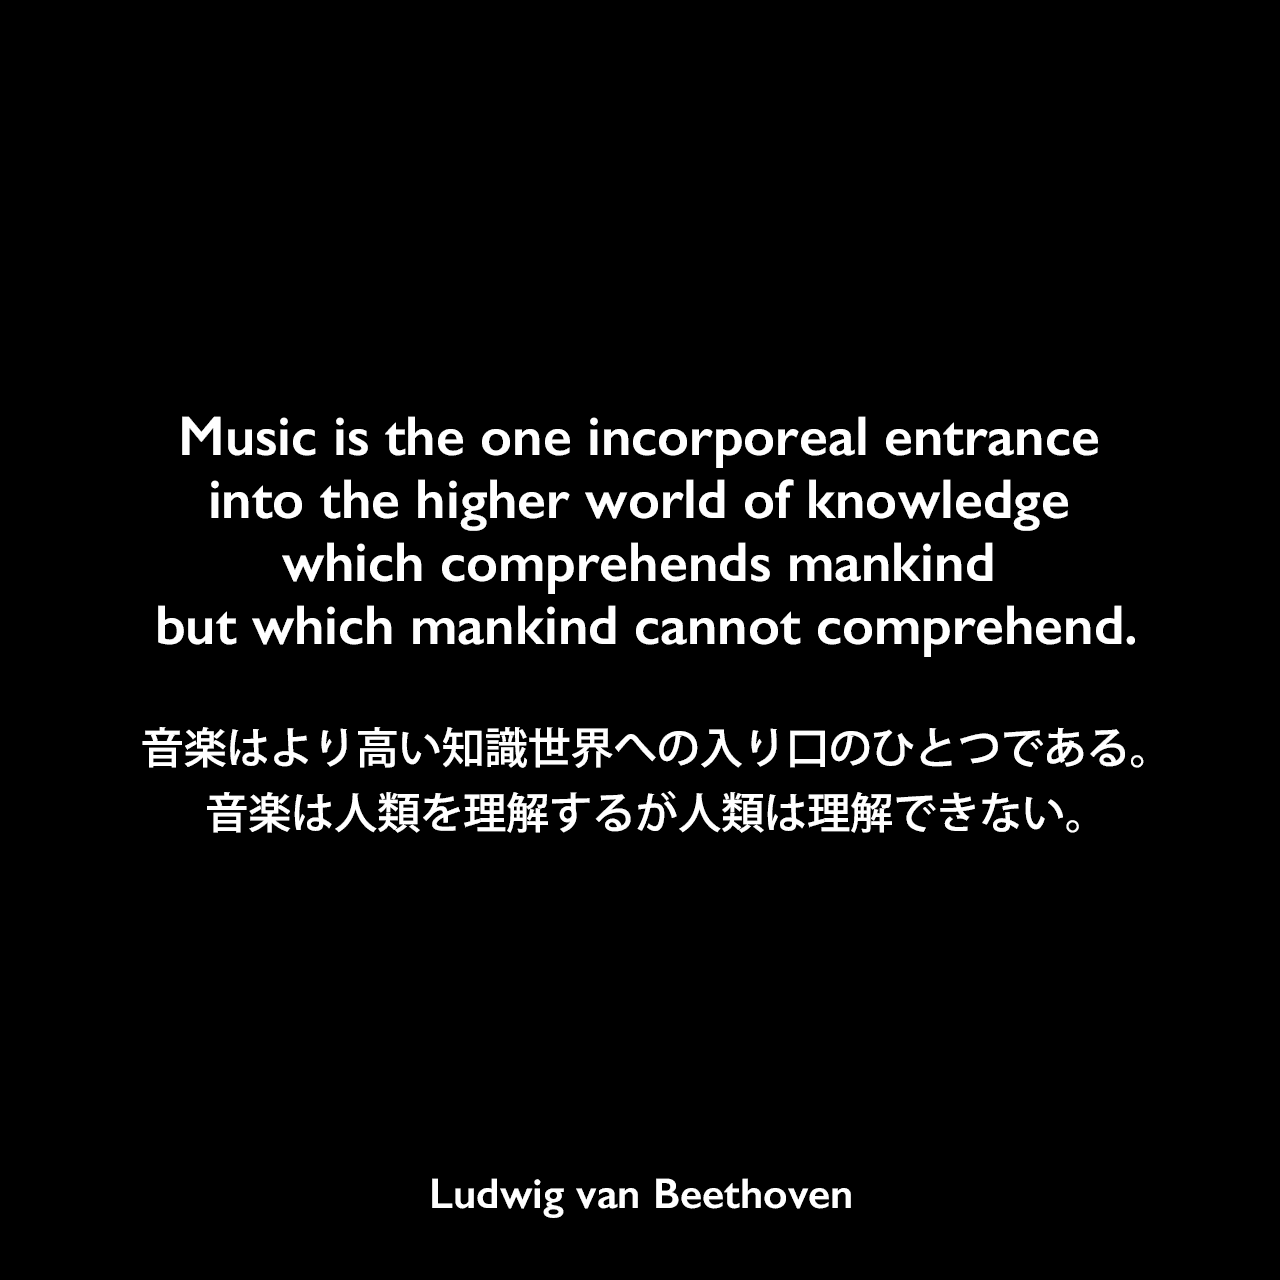 Music is the one incorporeal entrance into the higher world of knowledge which comprehends mankind but which mankind cannot comprehend.音楽はより高い知識世界への入り口のひとつである。音楽は人類を理解するが人類は理解できない。Ludwig van Beethoven